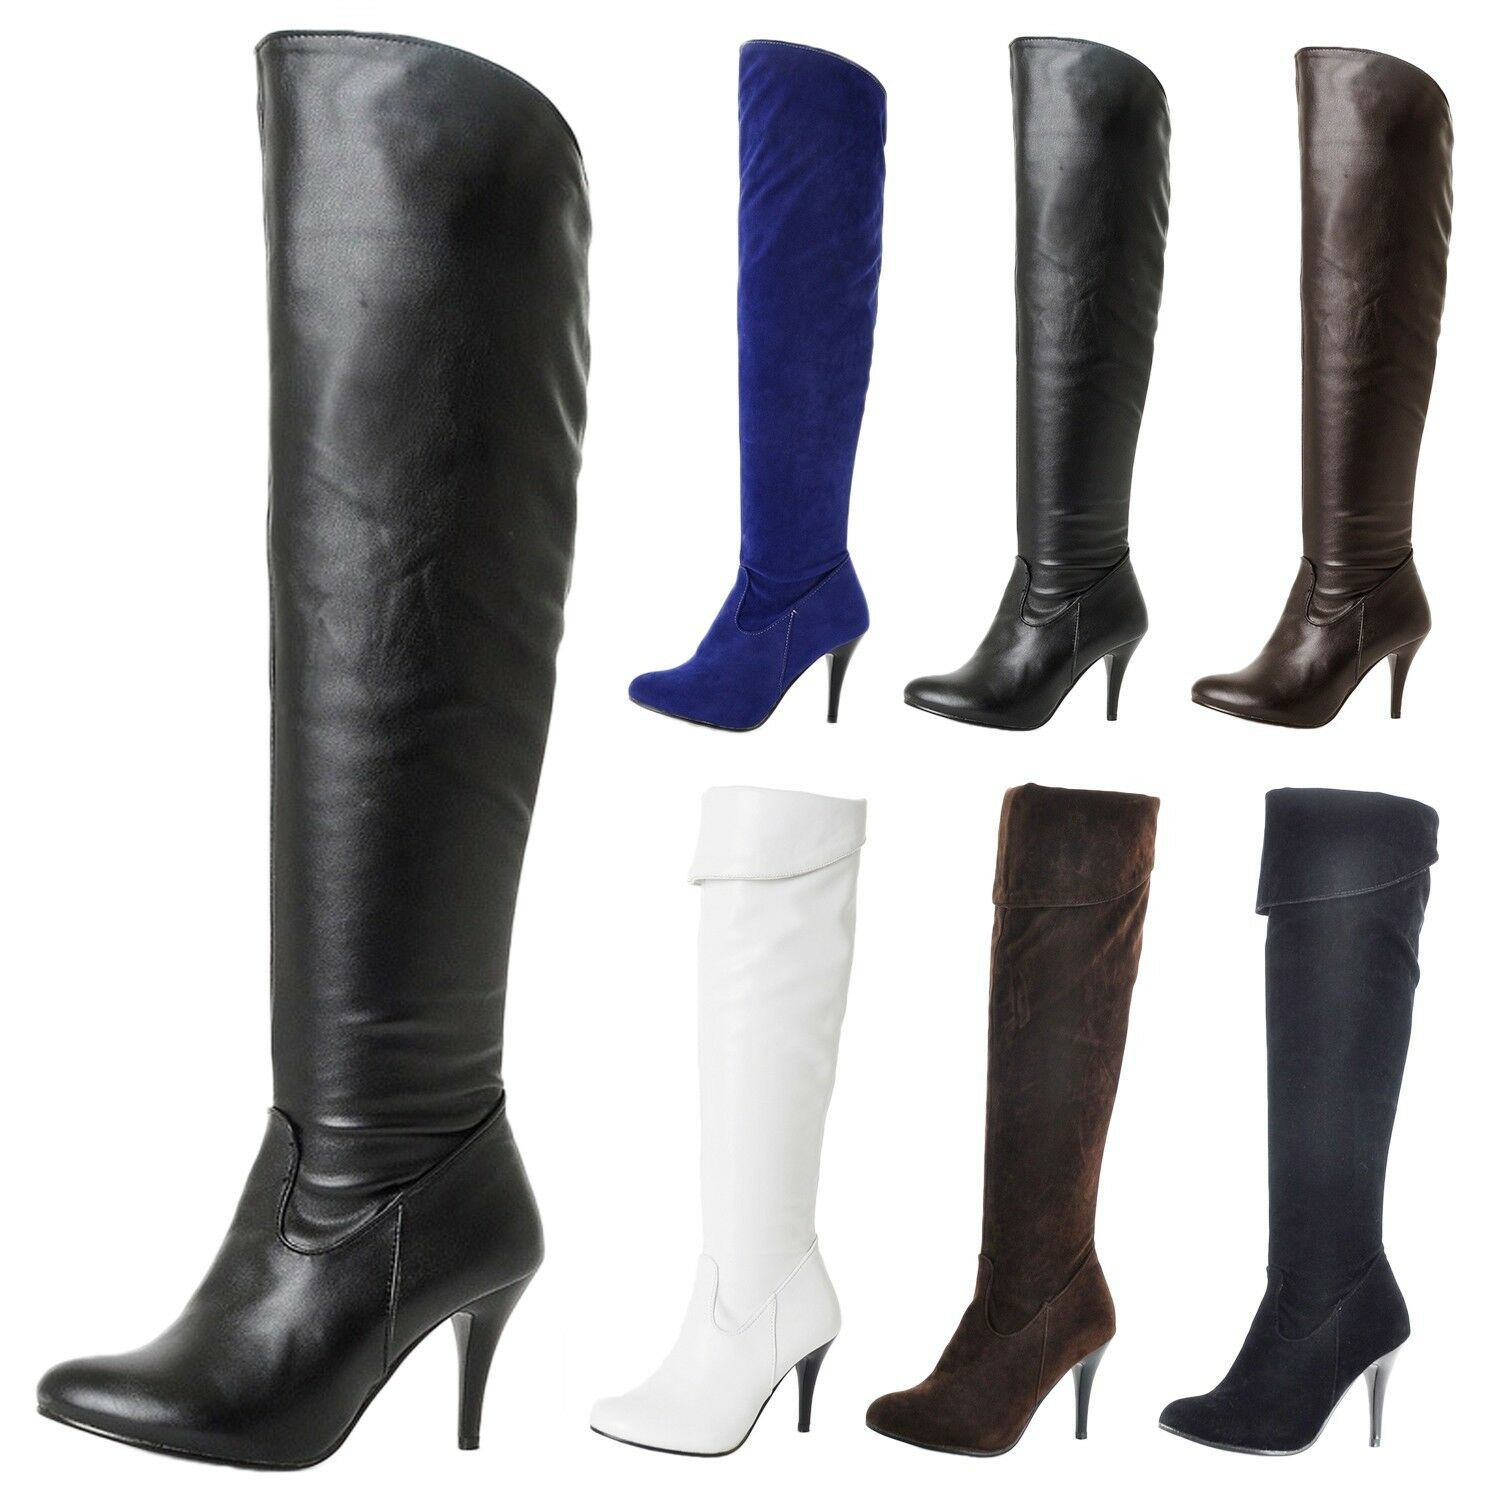 Over Knee boots Dancing Riding Slimming ladies party Stiletto Heel shoes UK 1-13